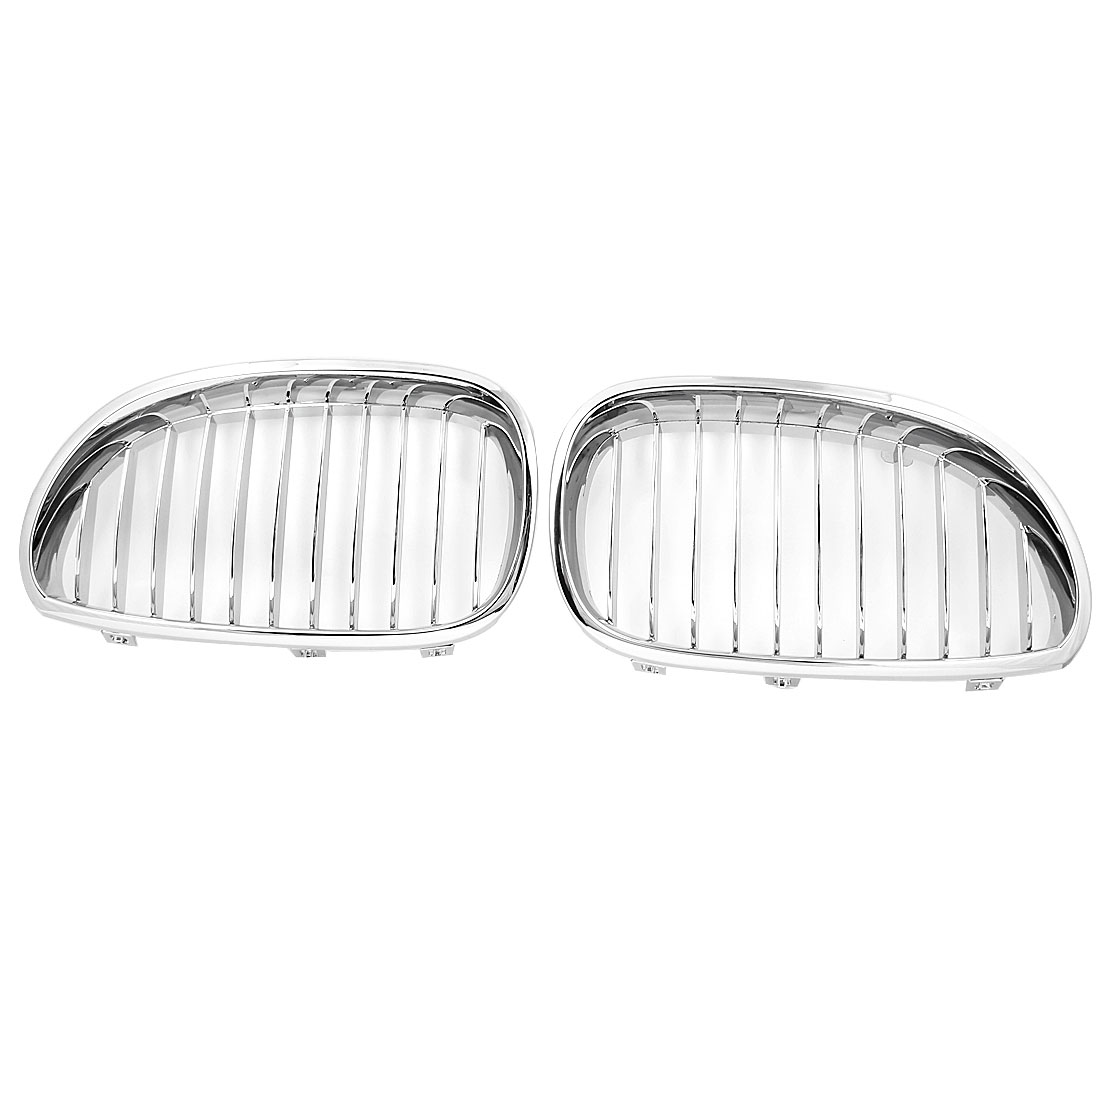 Pair Silver Tone Gloss Front Kidney Grill Grille for 2004-2010 BMW 5 Series E60 525i